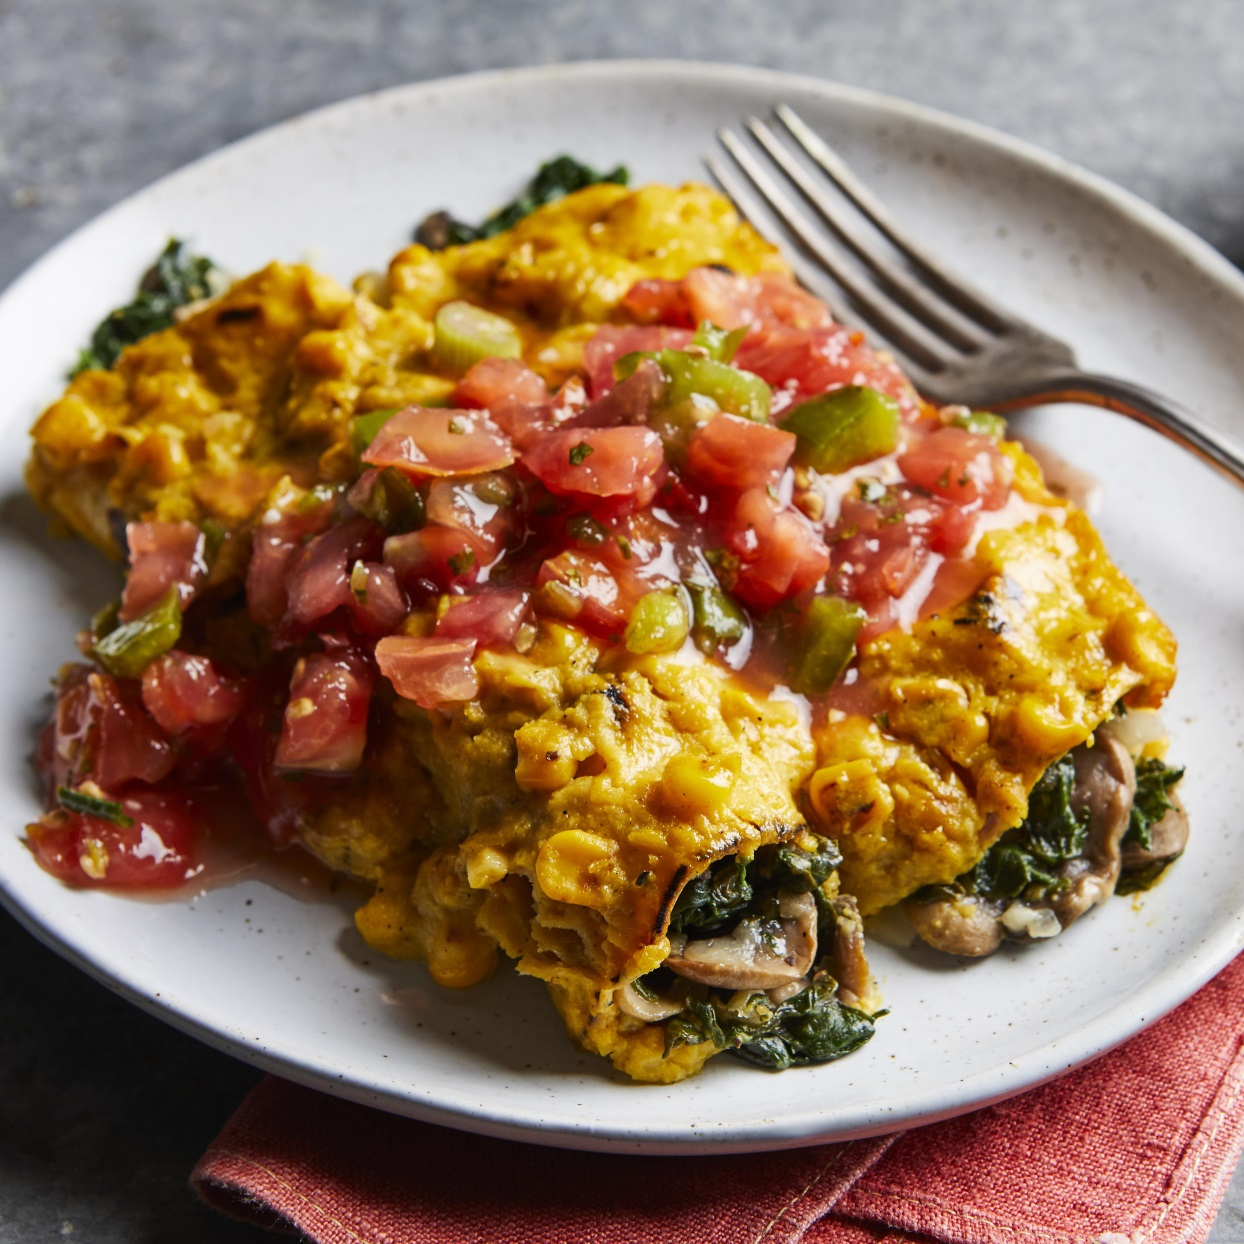 The secret to this creamy enchilada sauce is pureed toasted corn, enriched with roasted garlic.Source: EatingWell Magazine, May/June 1997